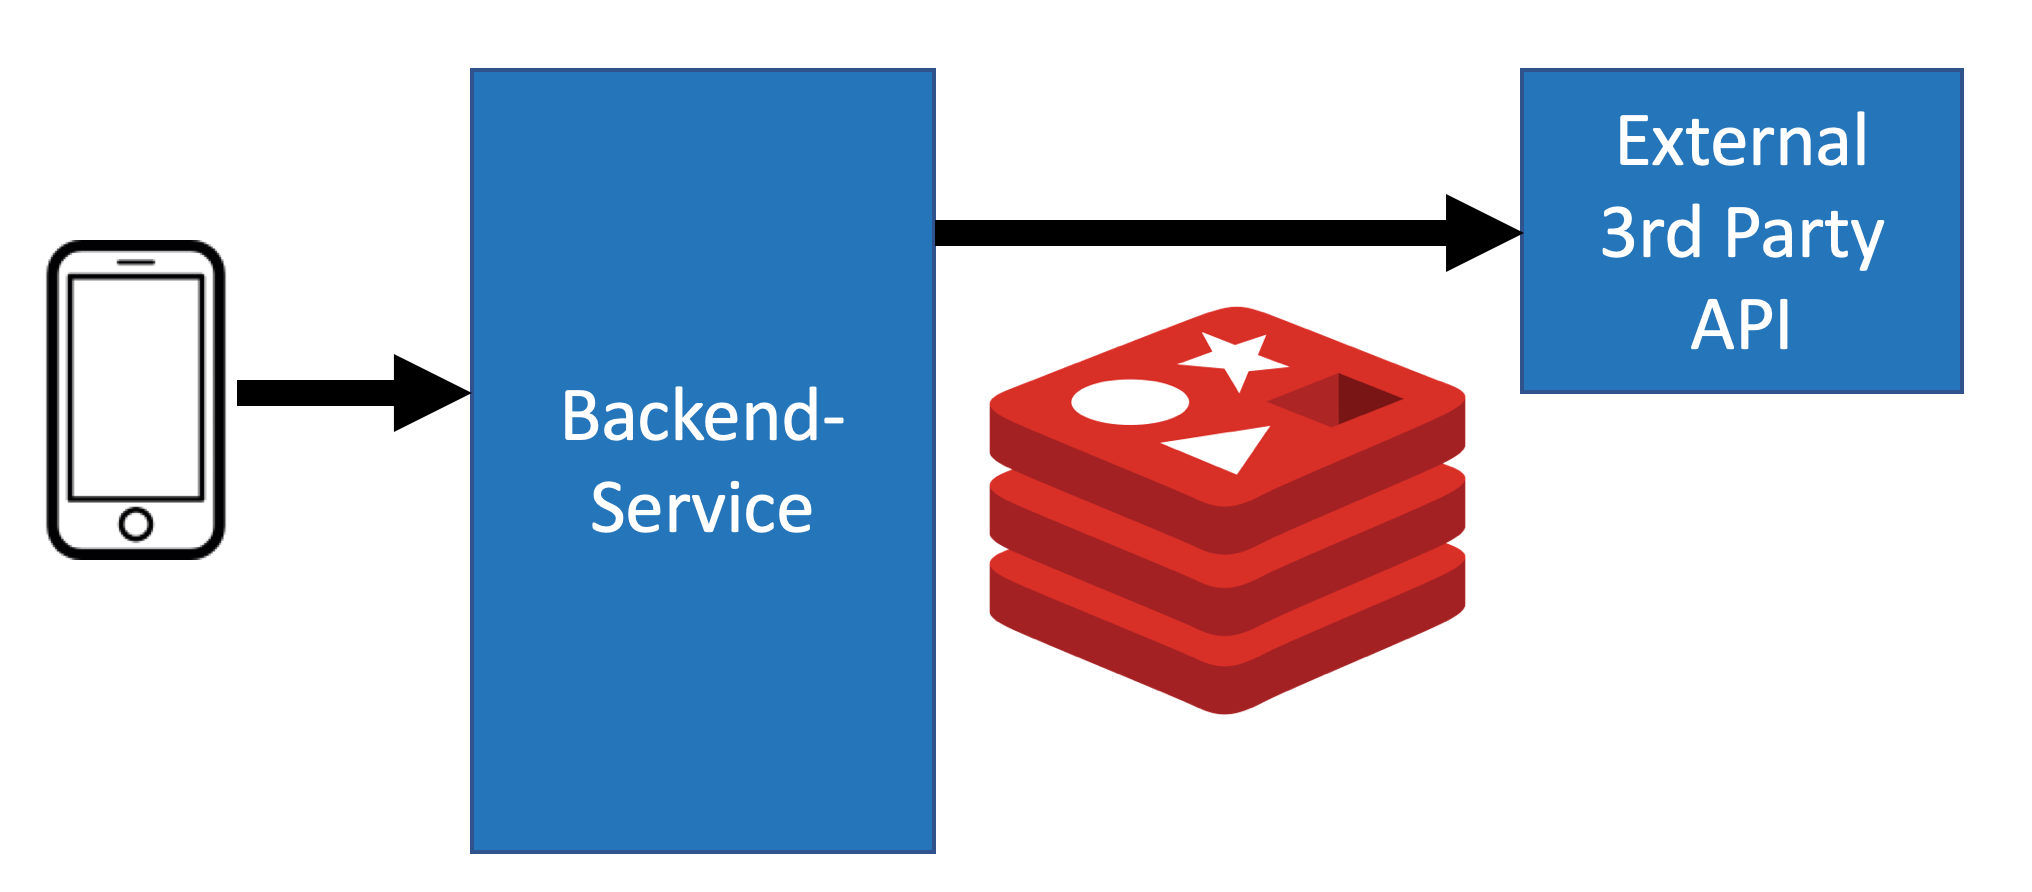 A smartphone access a Backend Service. The Backend Service is using Redis to cache calls against a 3rd Party API.